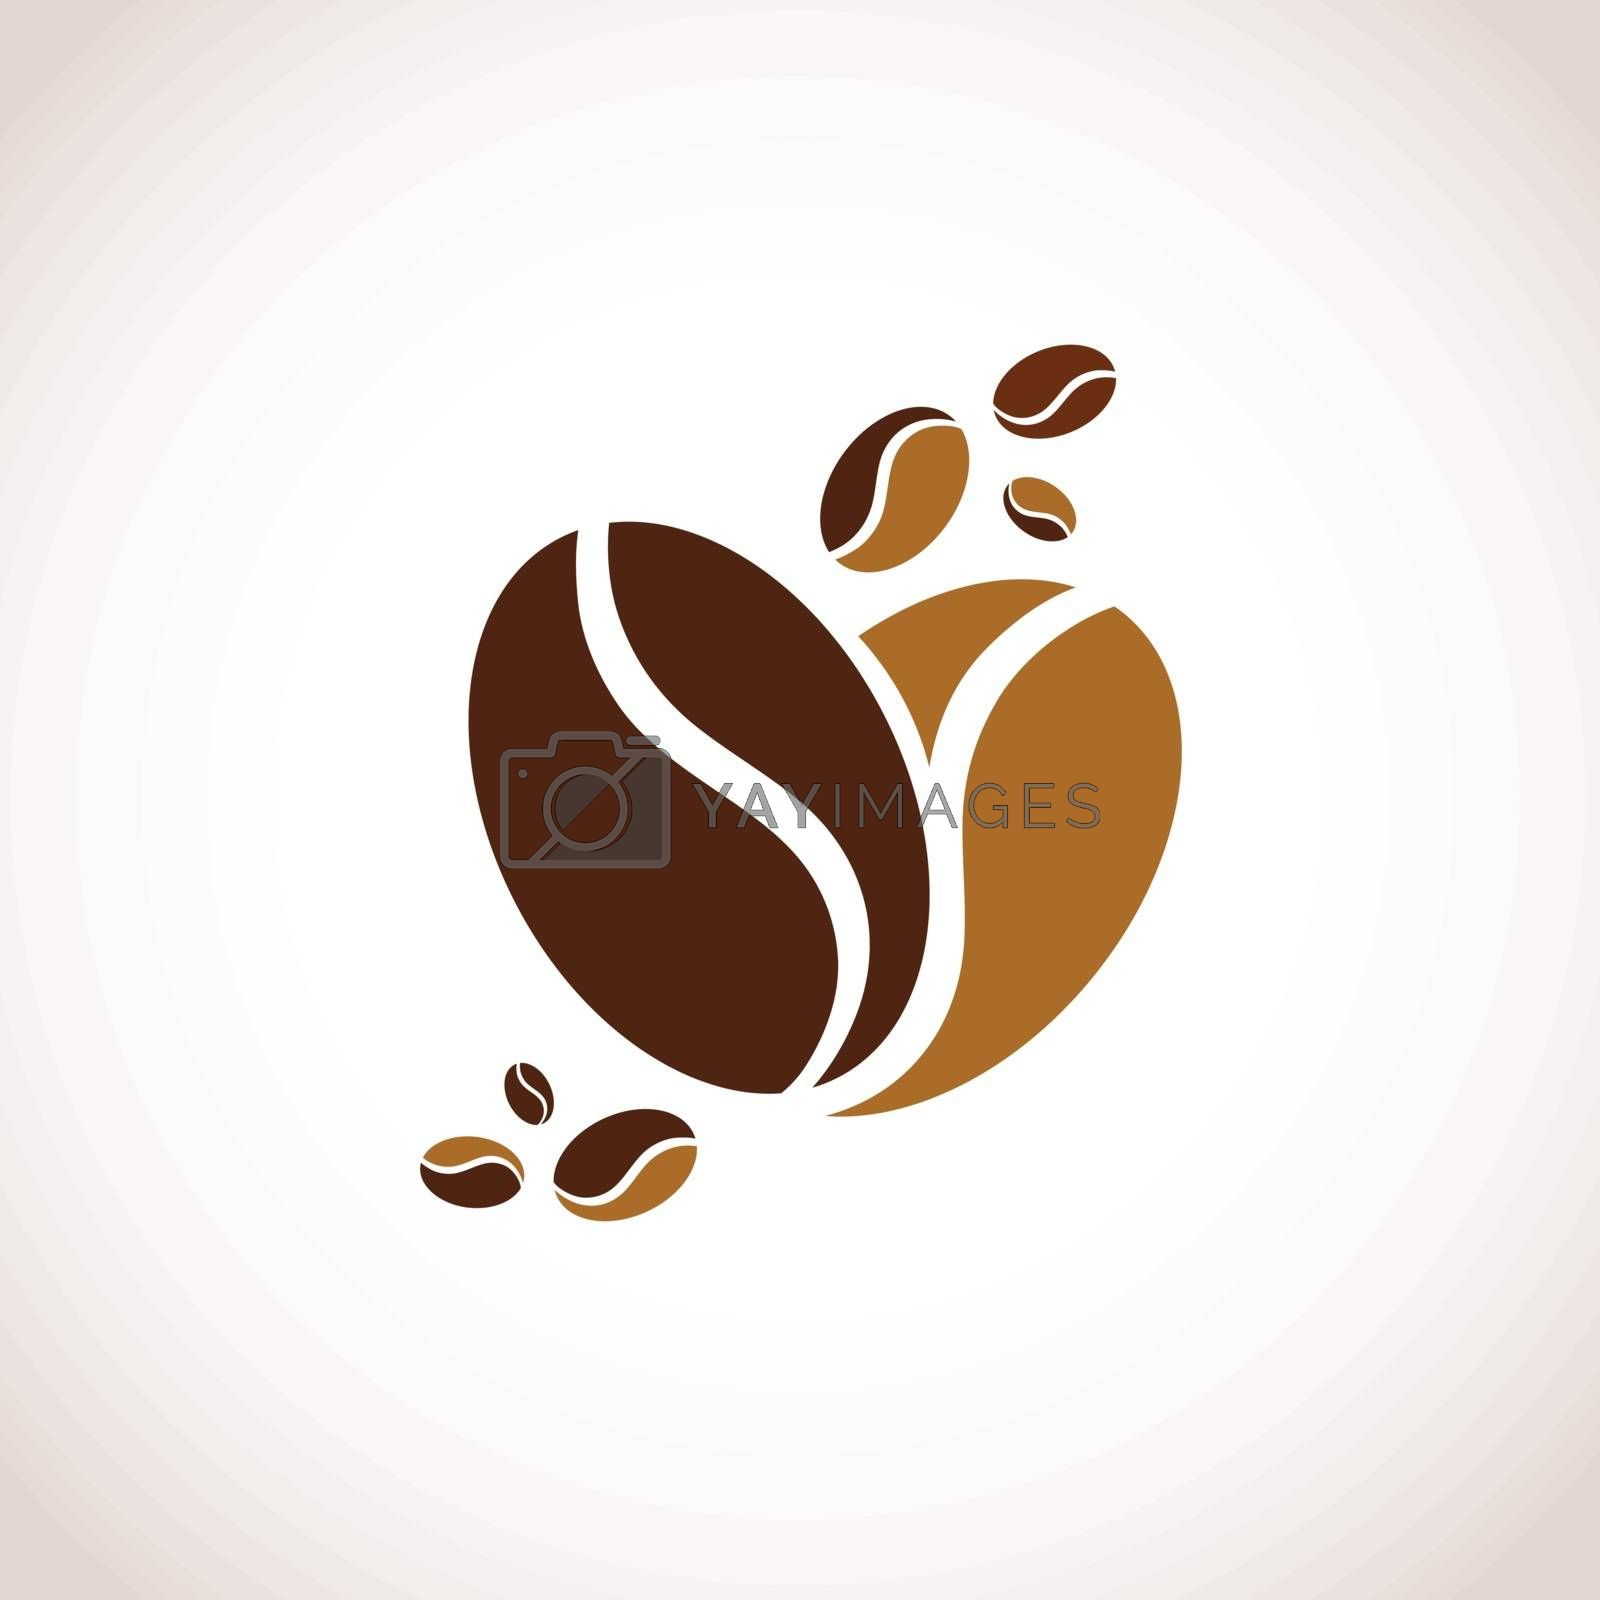 Illustration of Abstract Coffee Heart Symbol